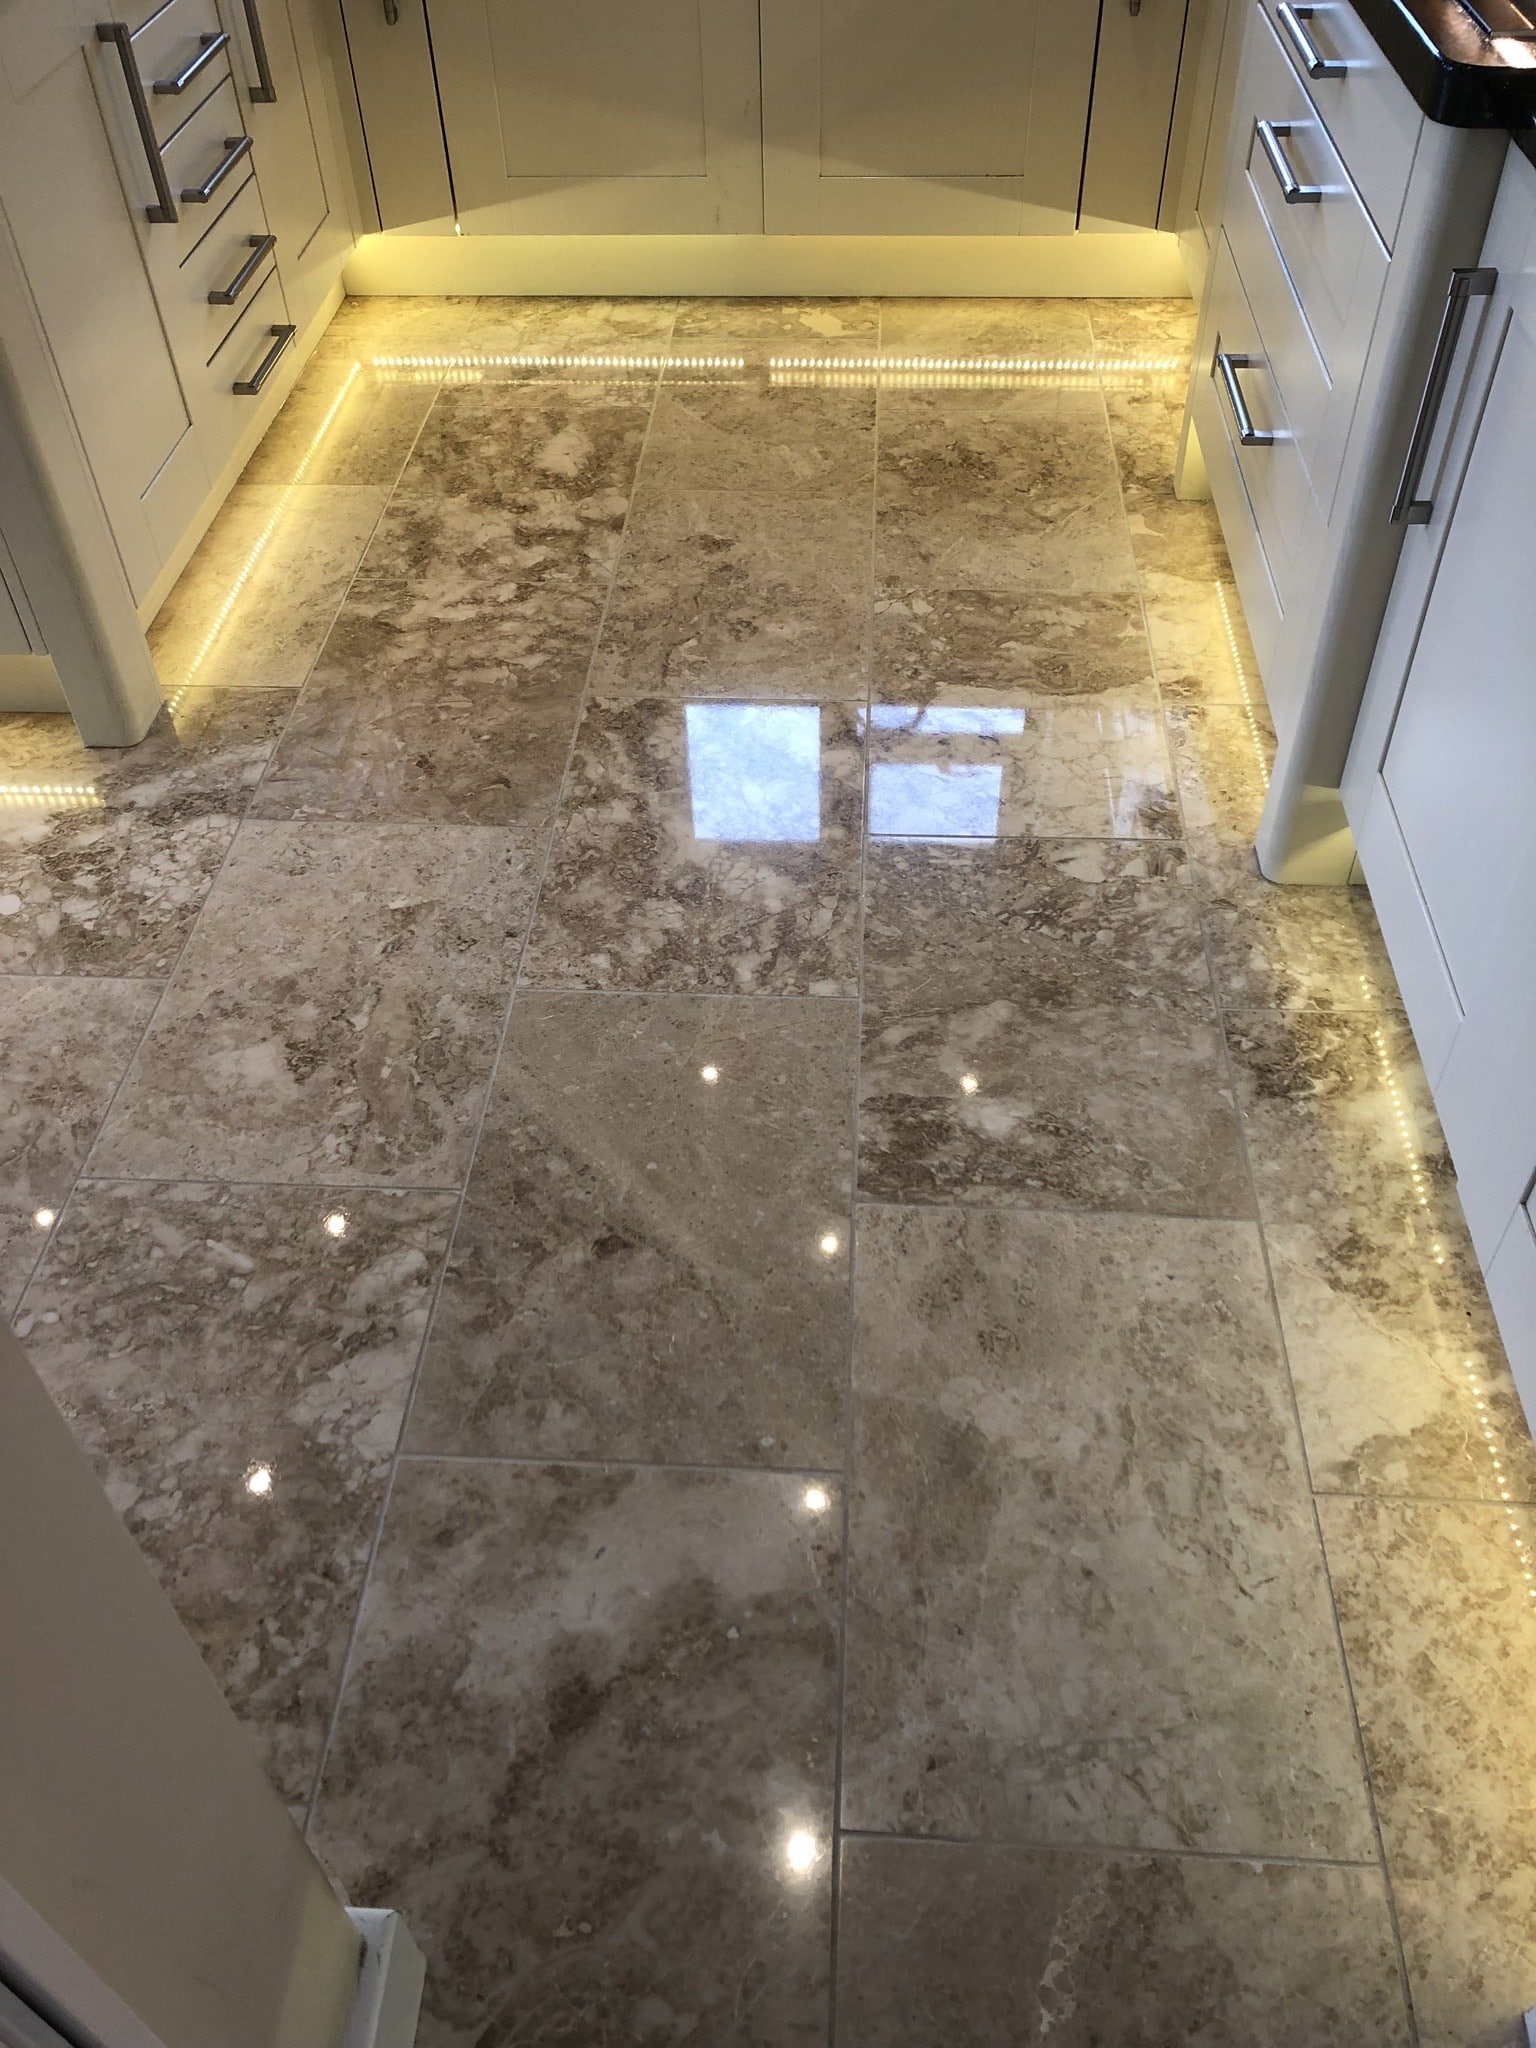 Marble Tiled Kitchen Floor After Polishing Callowend